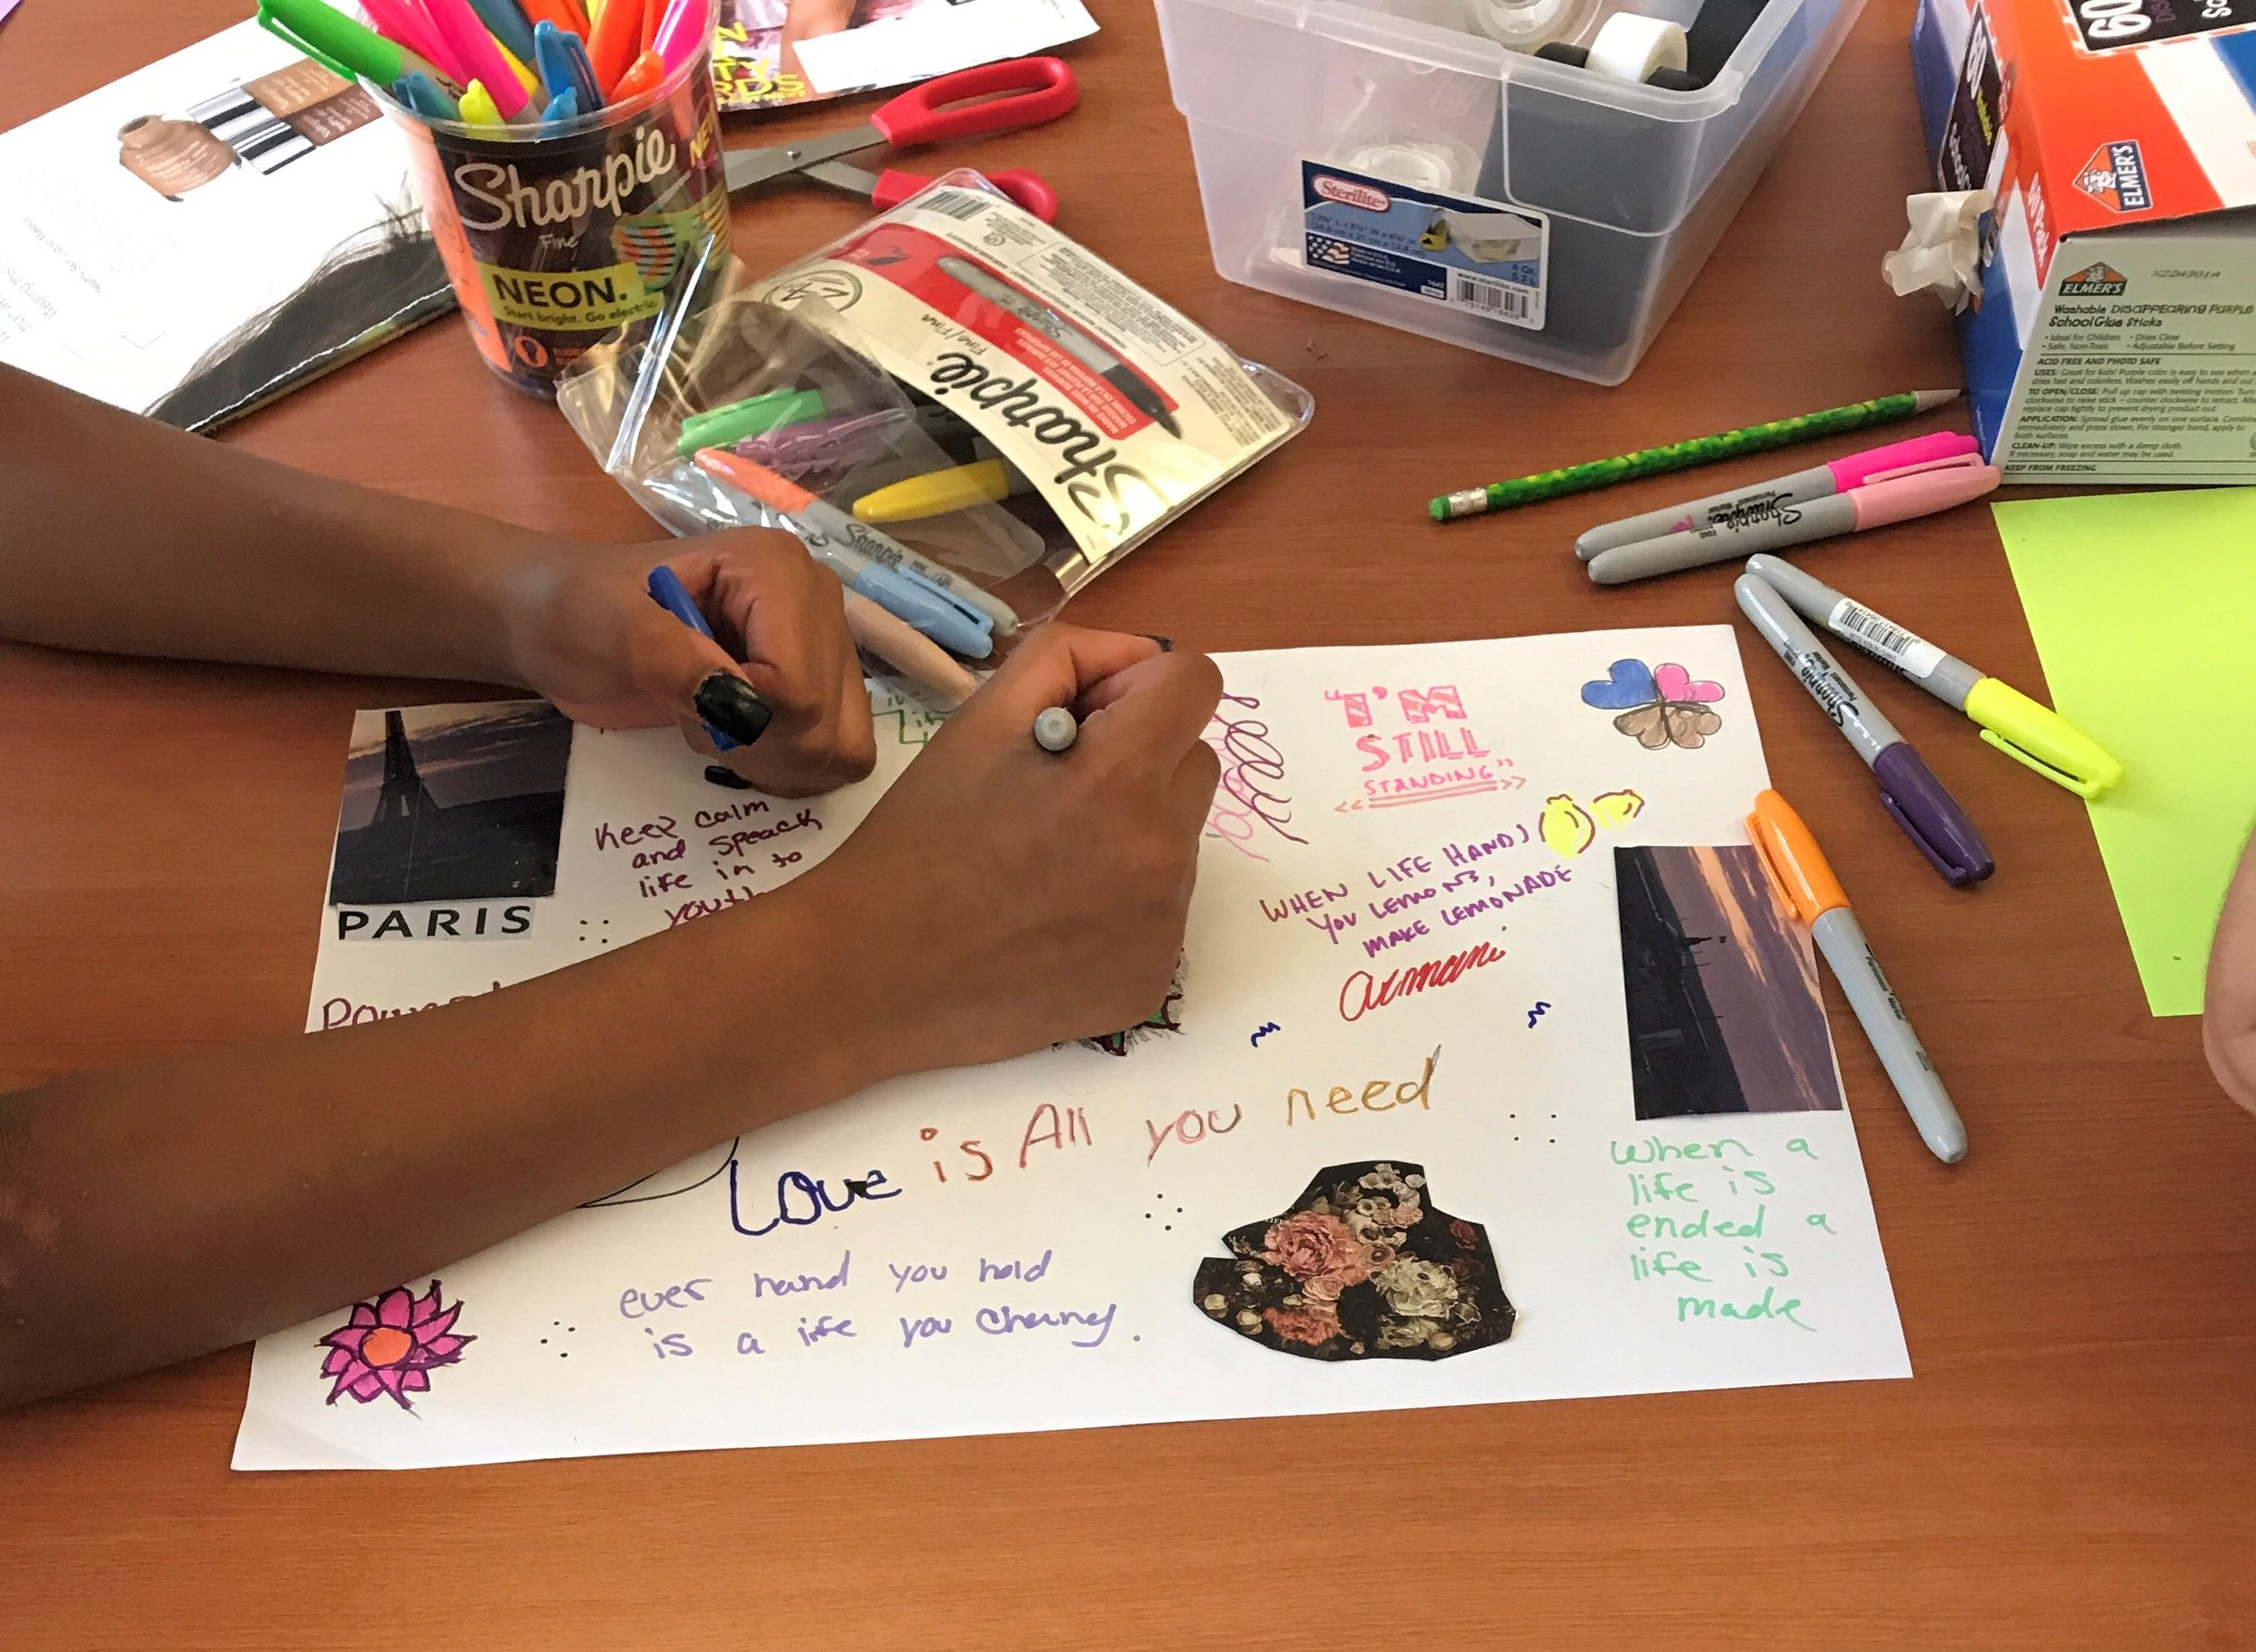 By conducting a collaging activity with youth, we were able to learn more about their aesthetic preferences. One very helpful insight this revealed was that our youth gravitate towards words, phrases, images, and colors that are positive and uplifting. The big themes were survivorship, love, and power.